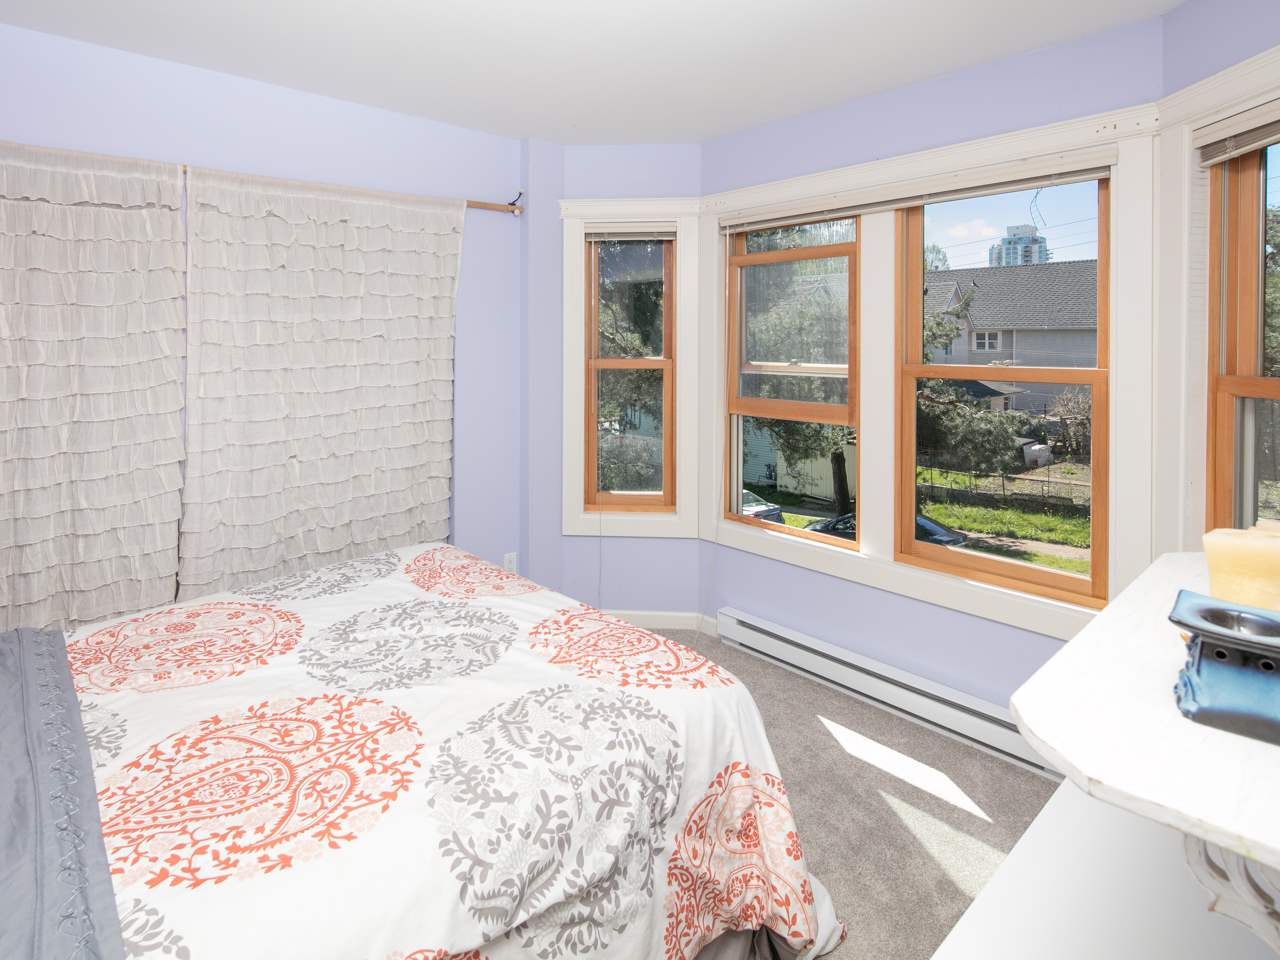 Photo 11: 840 DUNLEVY Avenue in Vancouver: Mount Pleasant VE House for sale (Vancouver East)  : MLS® # R2159141